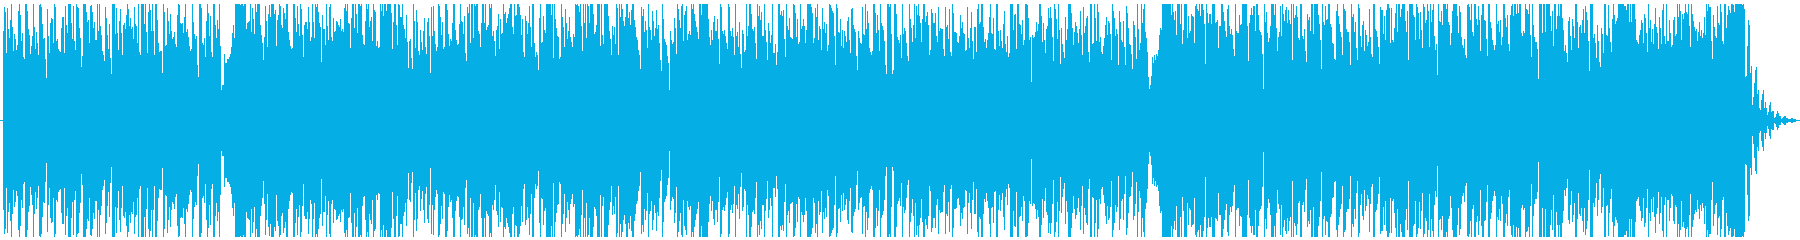 No synth / Fun energy that makes you feel better's reproduced waveform